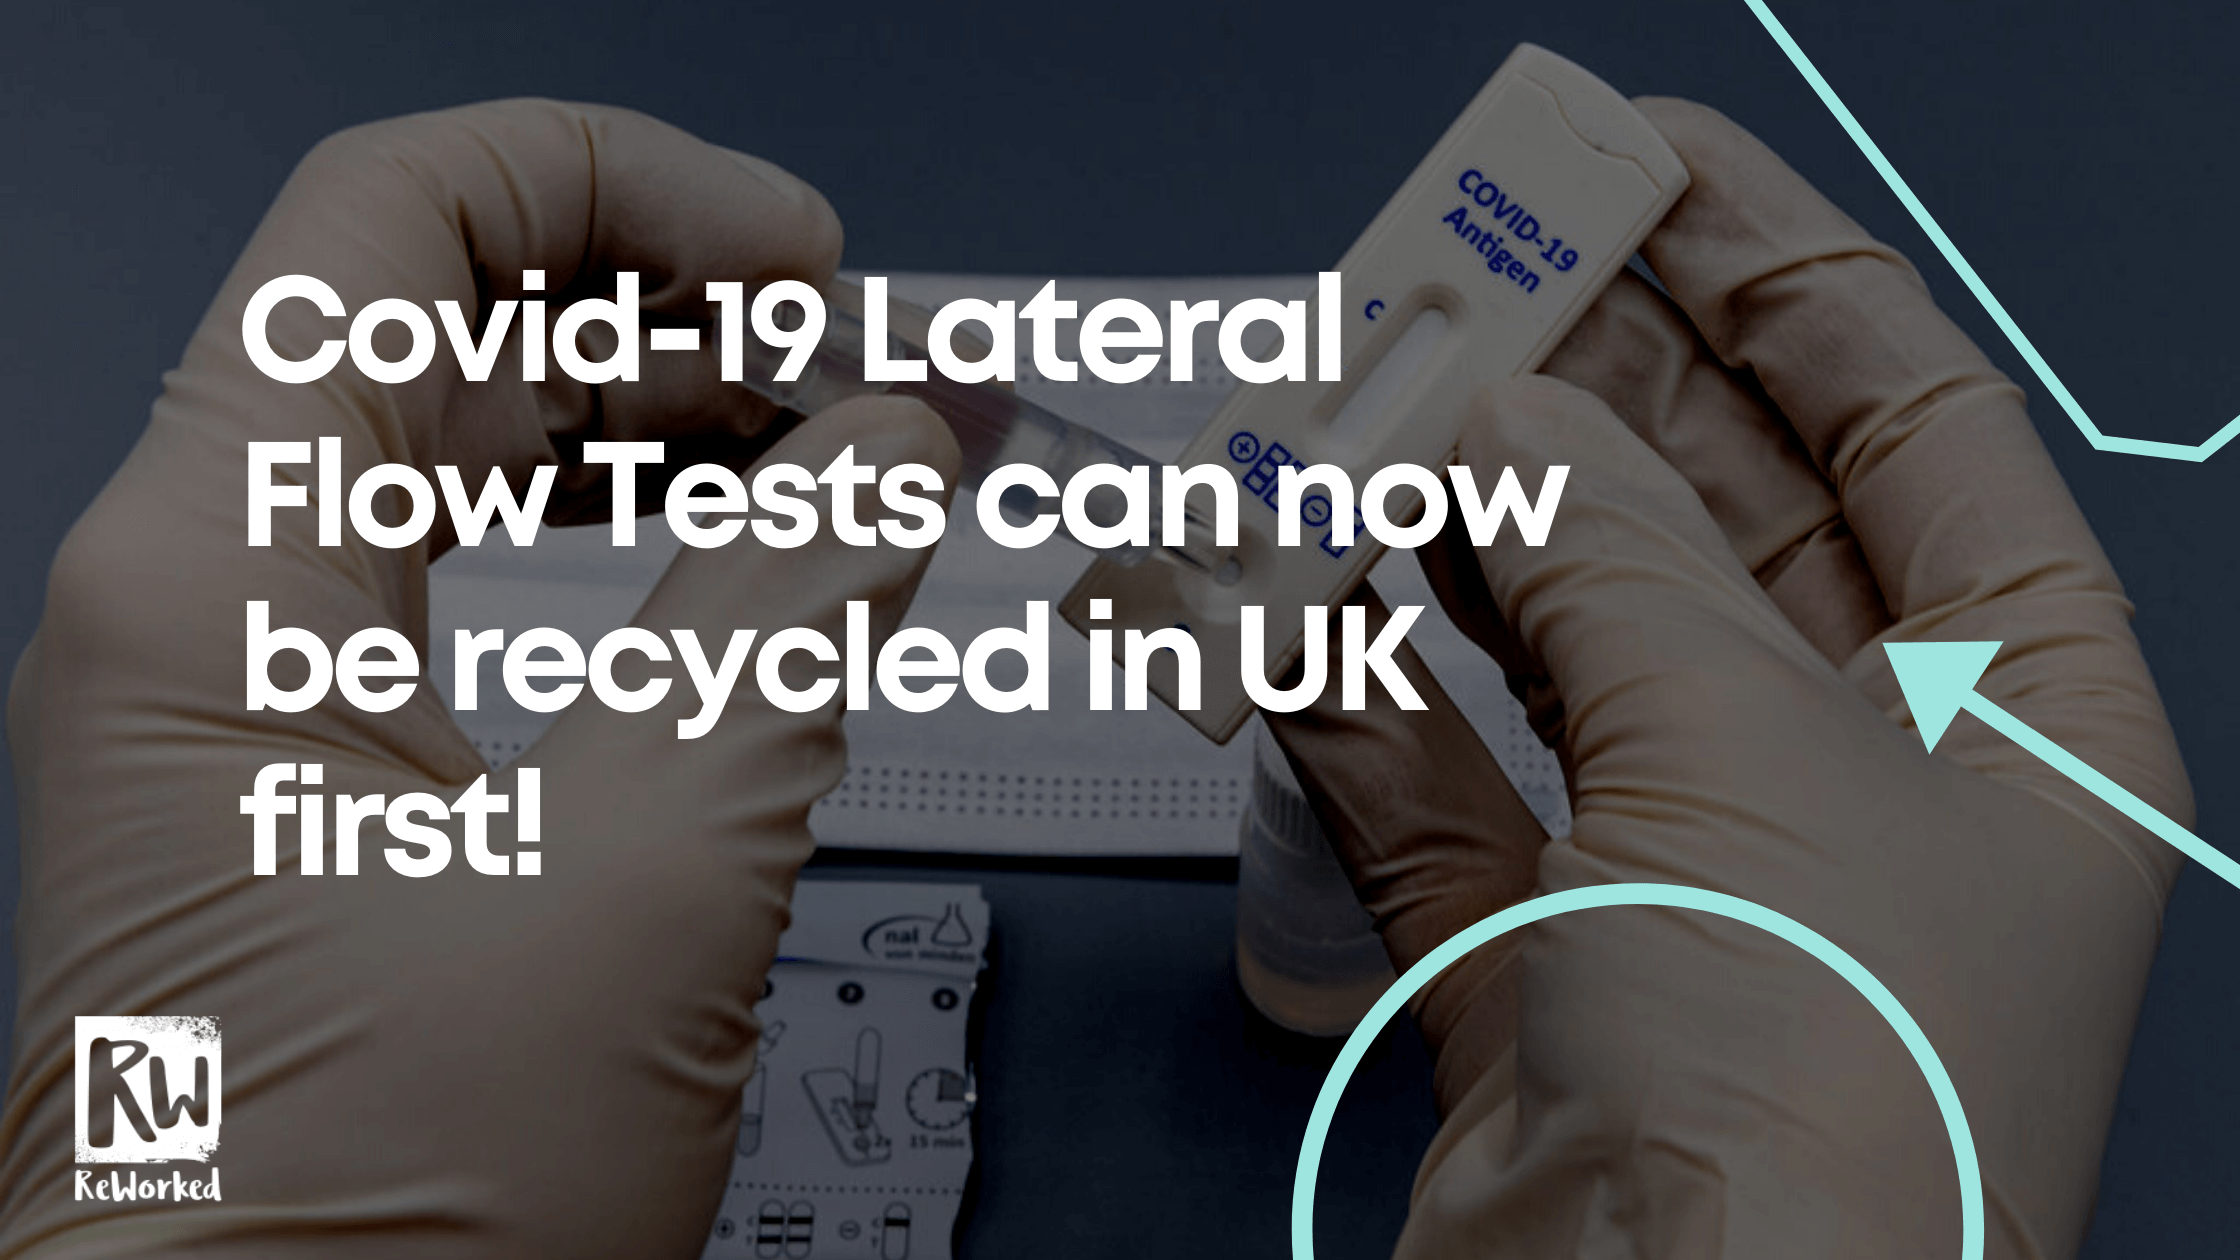 Covid-19 Lateral Flow Tests can now be recycled in UK first!